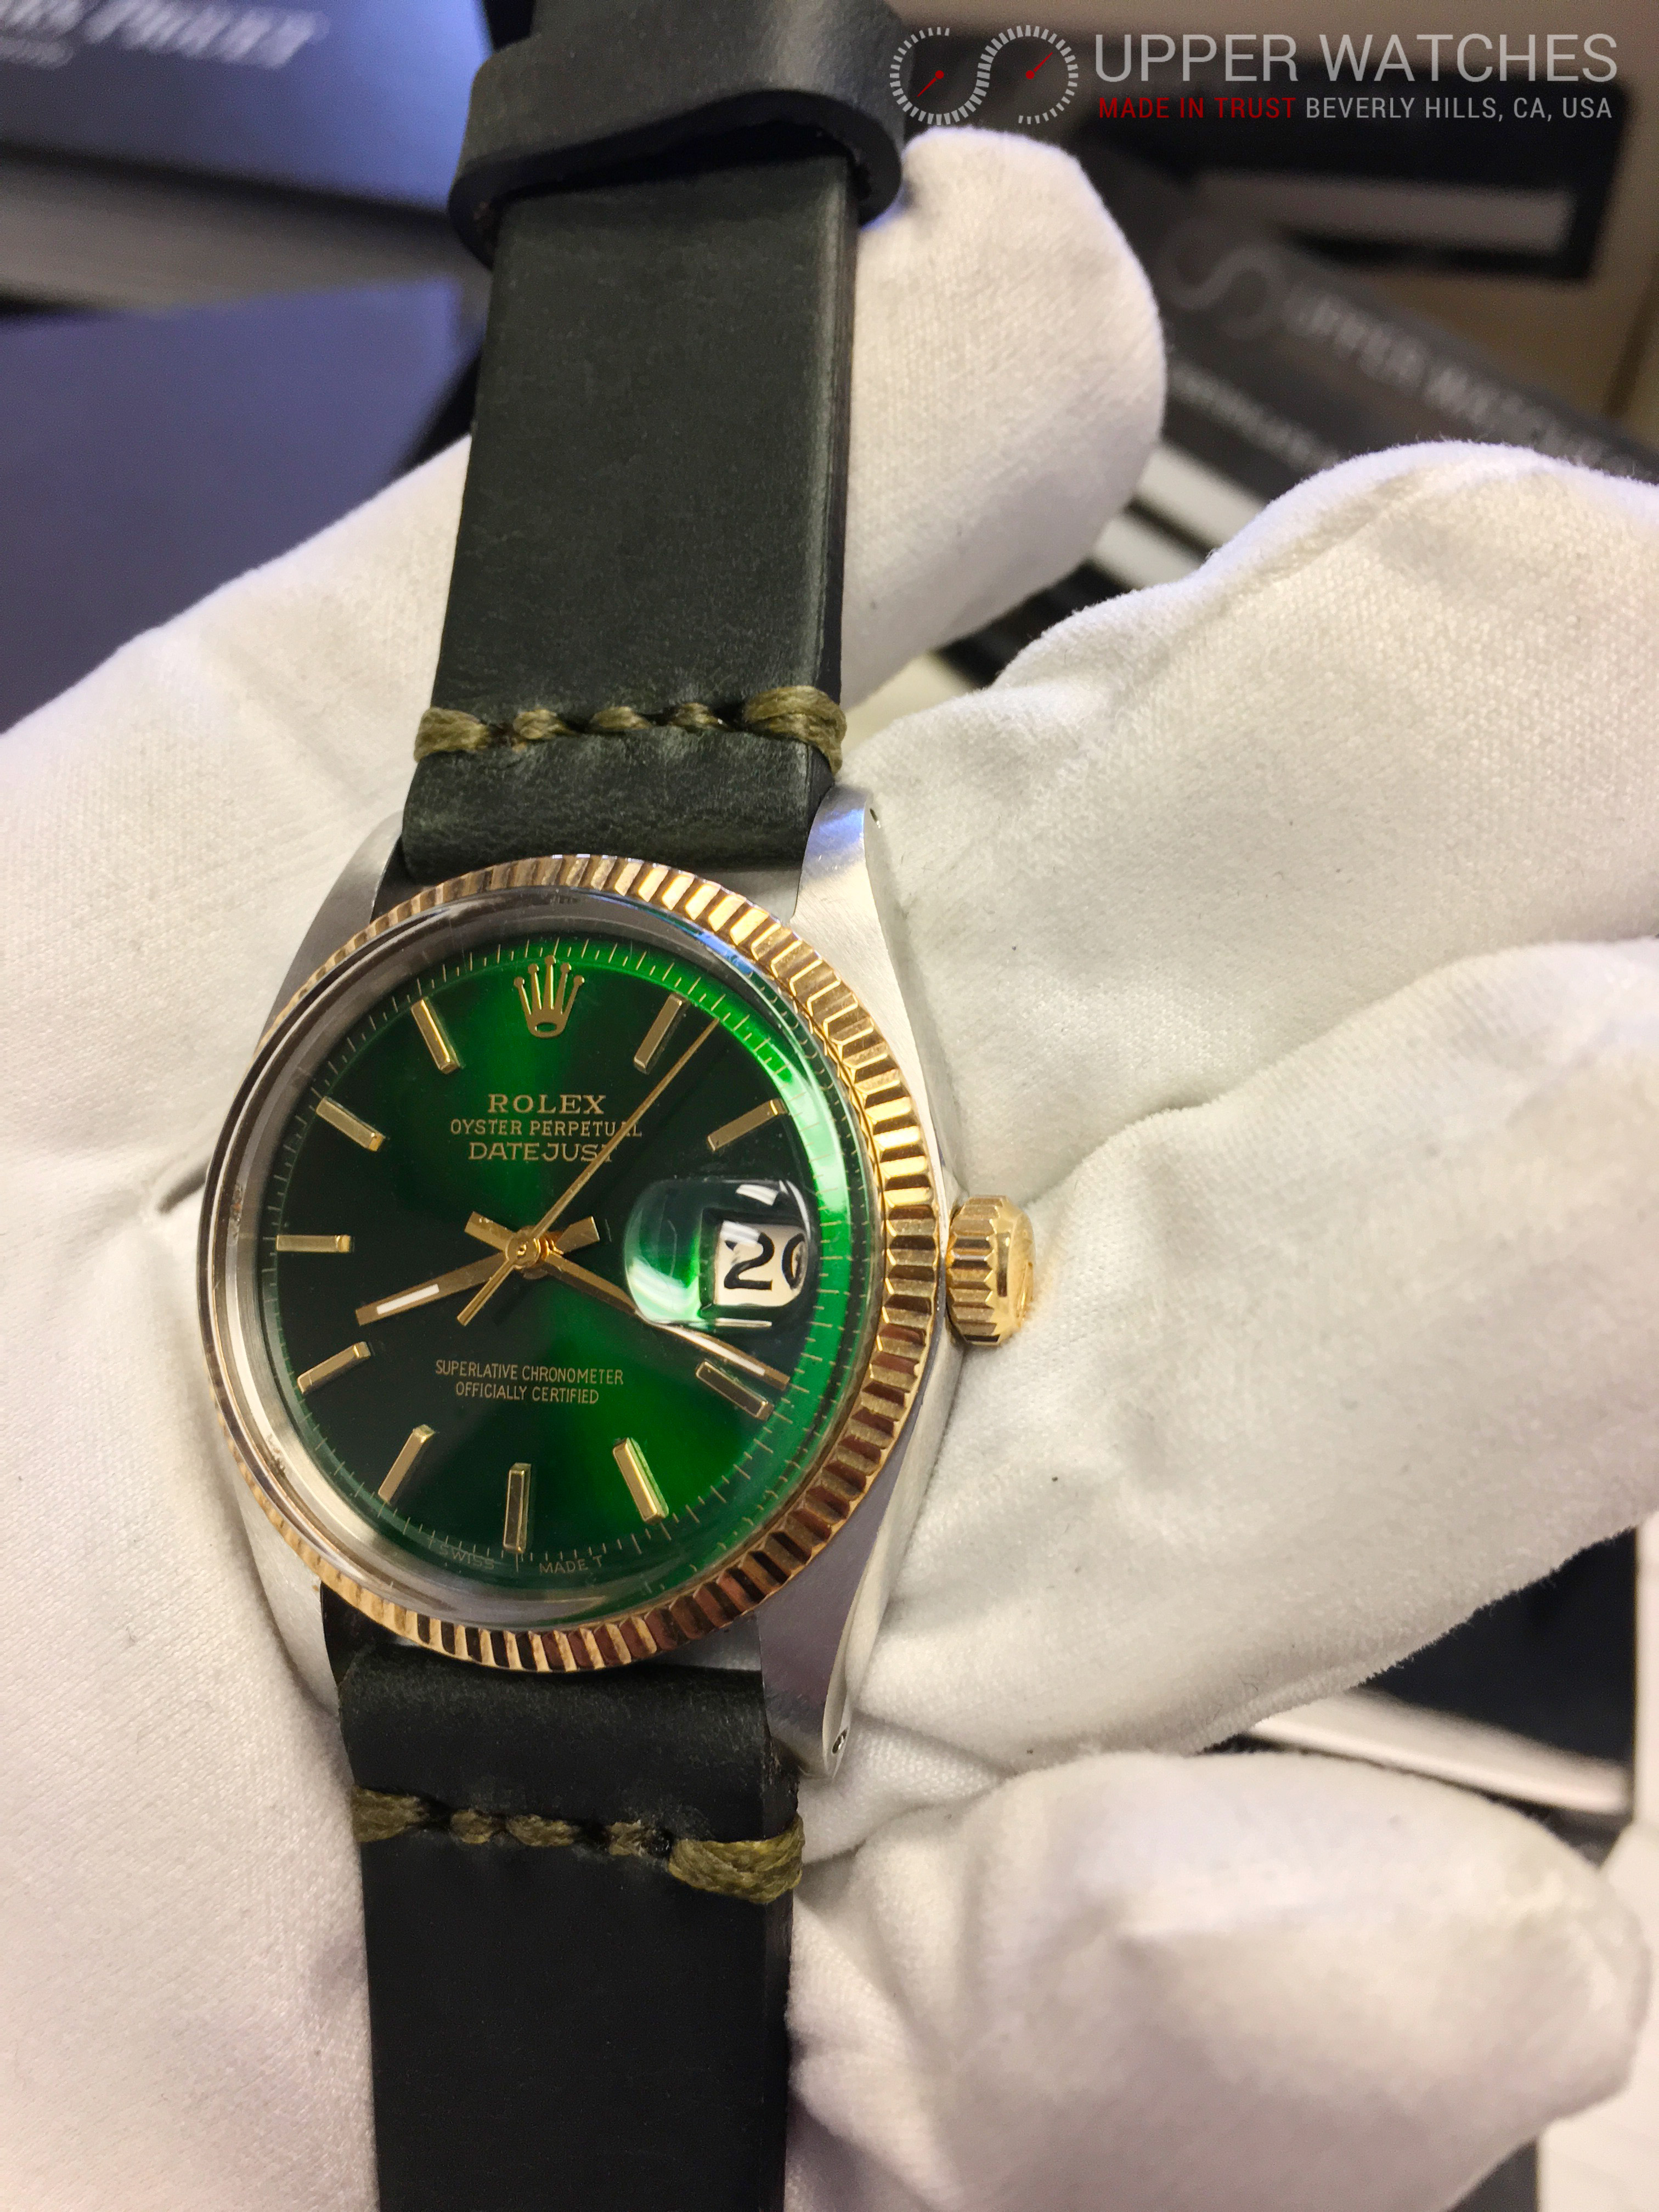 Rolex Datejust 1601 Green Dial Upper Watches